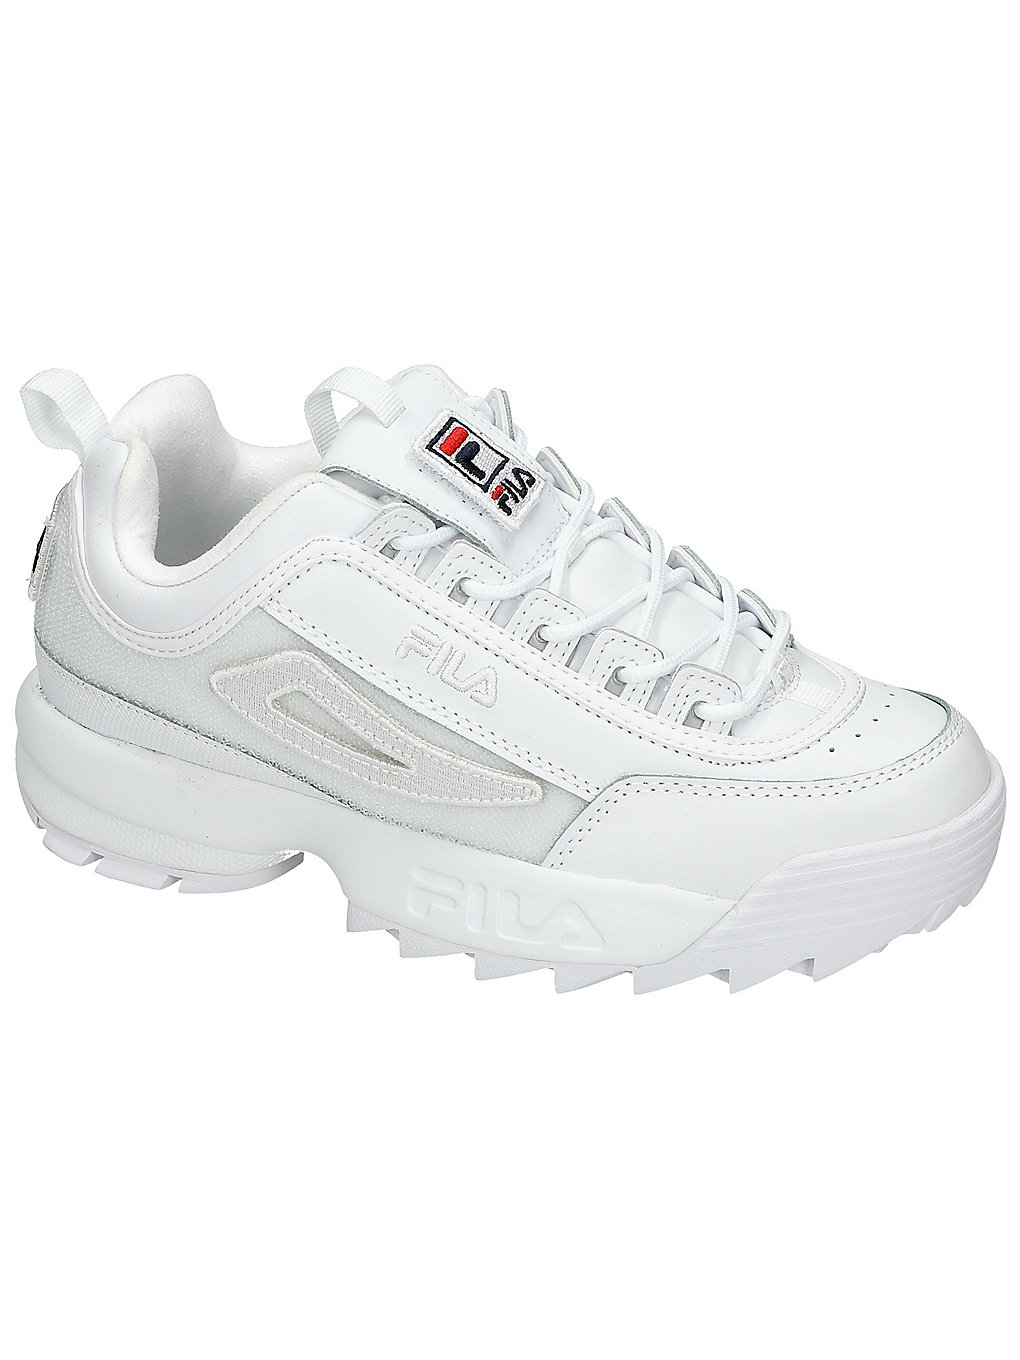 c1dff23014b Fila Disruptor II Patches Sneakers white Gr. 41.0 EU - Jeftinije.hr